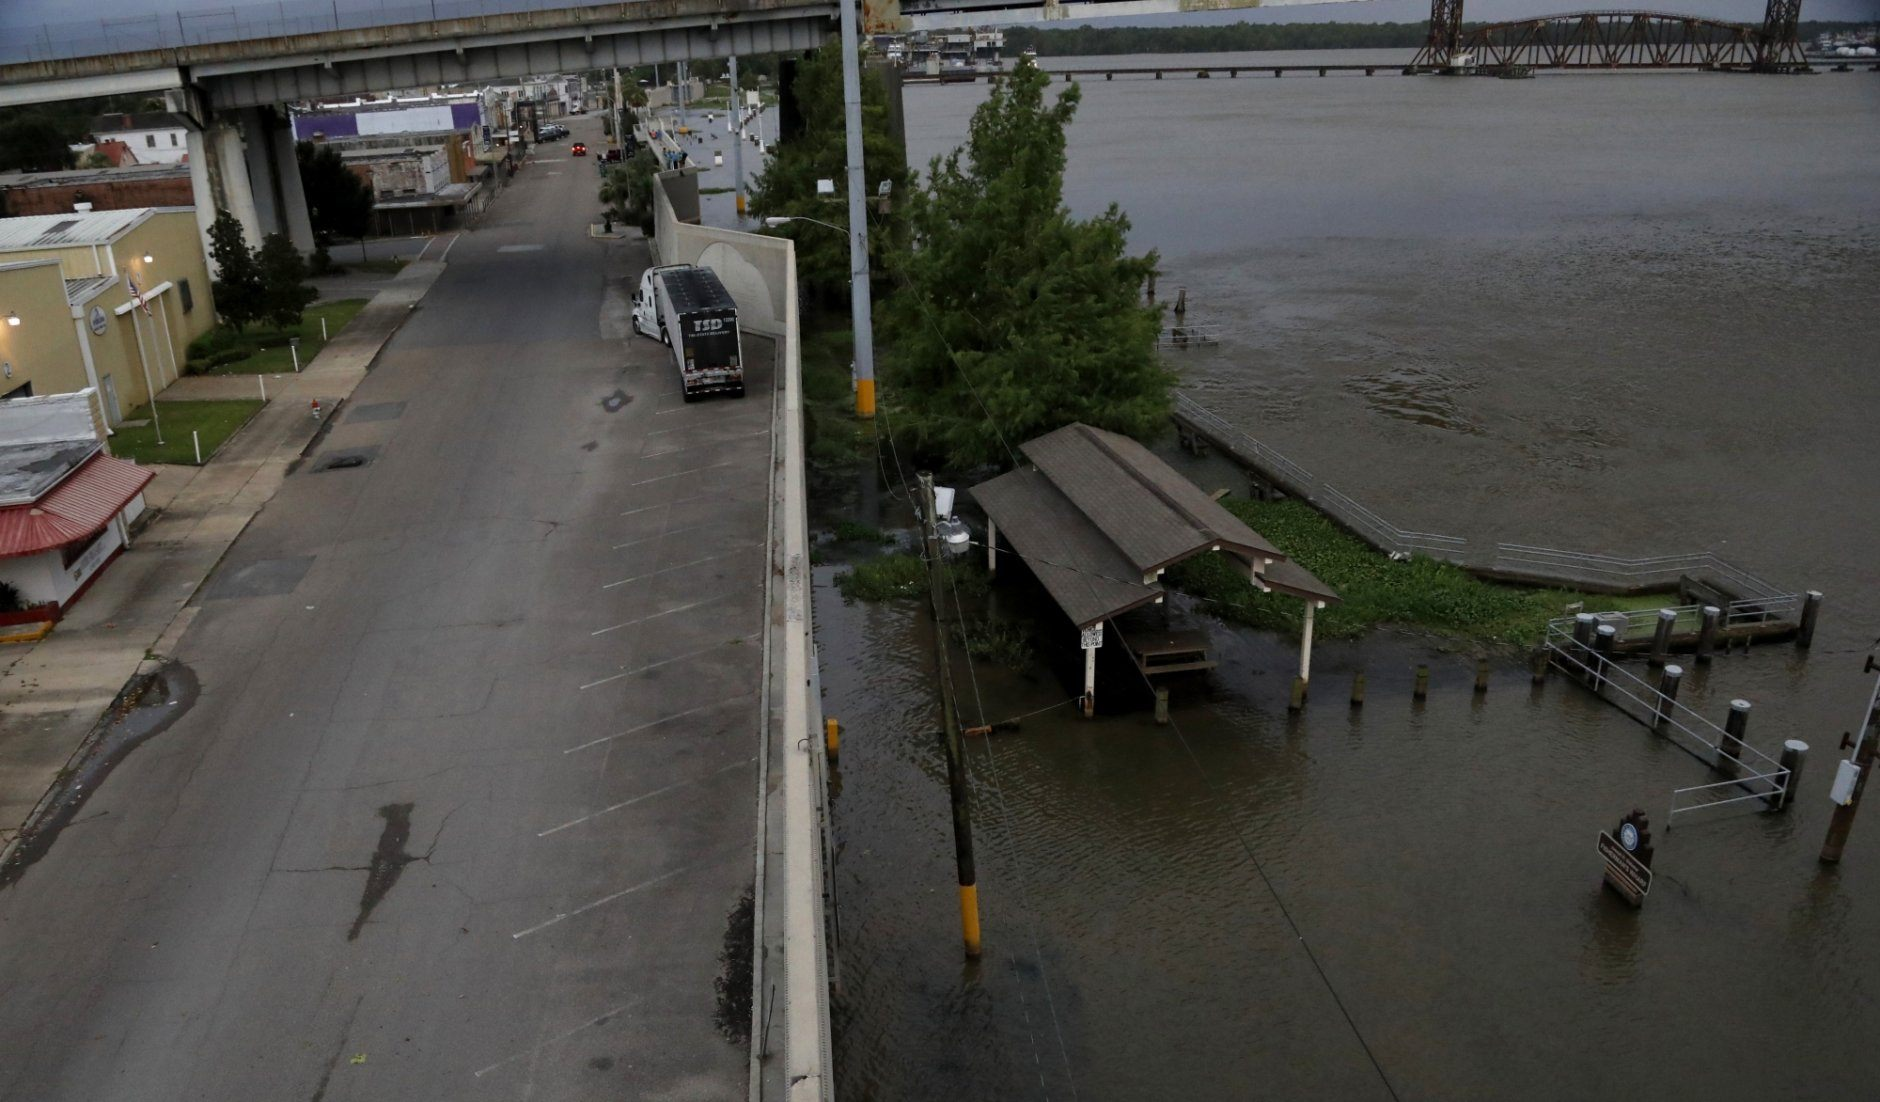 The flood wall near the Long-Allen Bridge in Morgan City, La., continues to protect residents and area businesses as the waters rise in the Atchafalaya River, Friday, July 12, 2019. With Tropical Storm Barry expected to blow ashore early Saturday near Morgan City as the first hurricane of the season, authorities rushed to close floodgates and raise the barriers around the New Orleans metropolitan area of 1.3 million people for fear of disastrous flooding.. (AP Photo/Rogelio V. Solis)